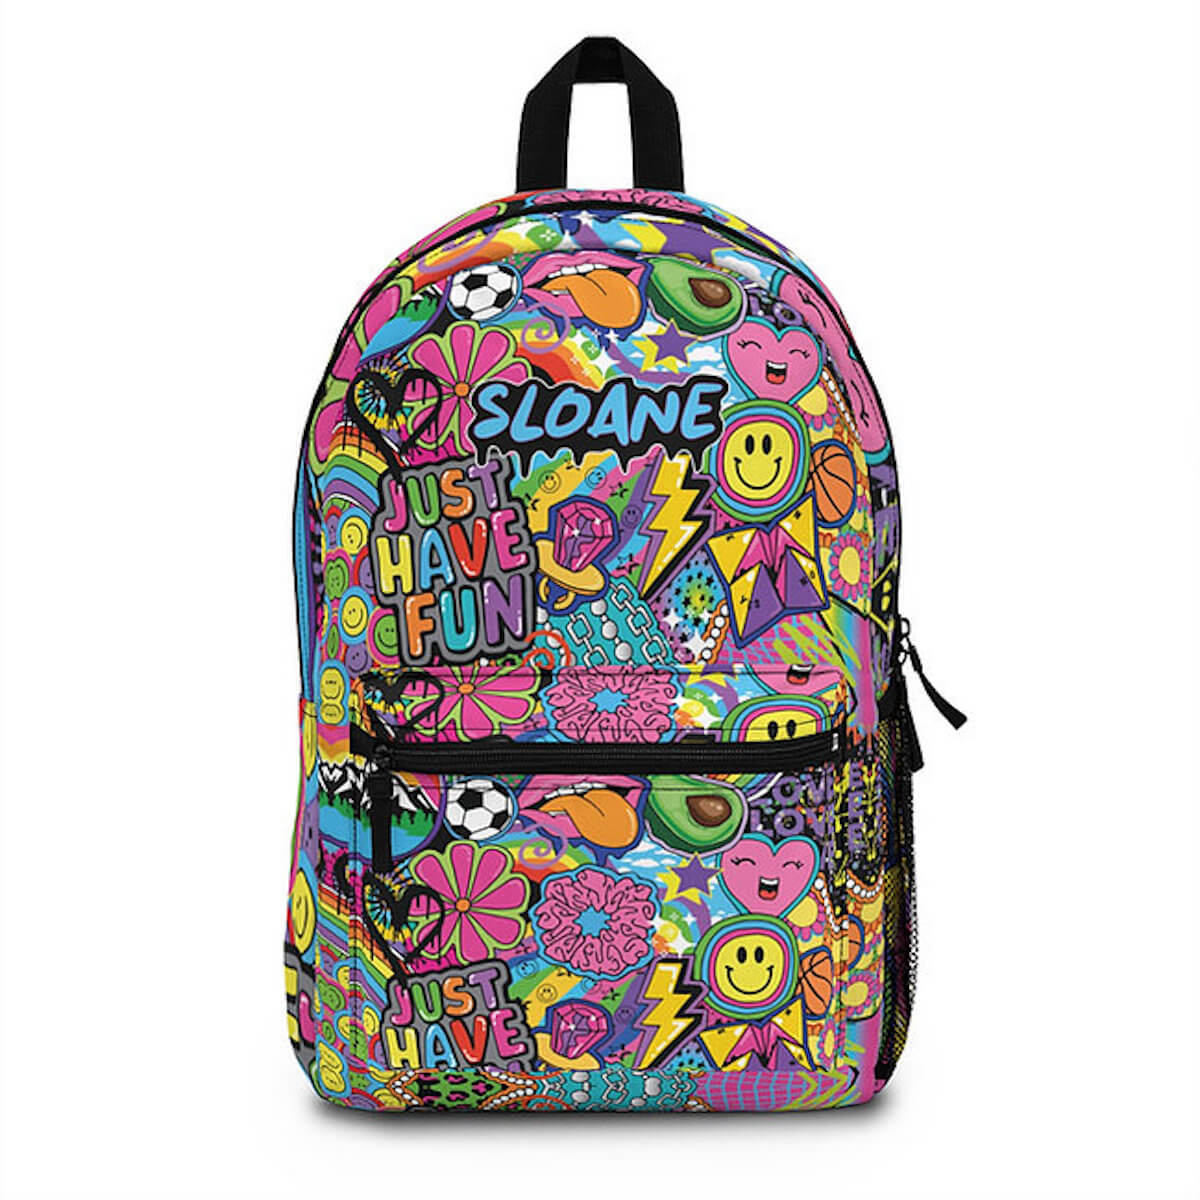 Kicks by Sammy just have fun backpack